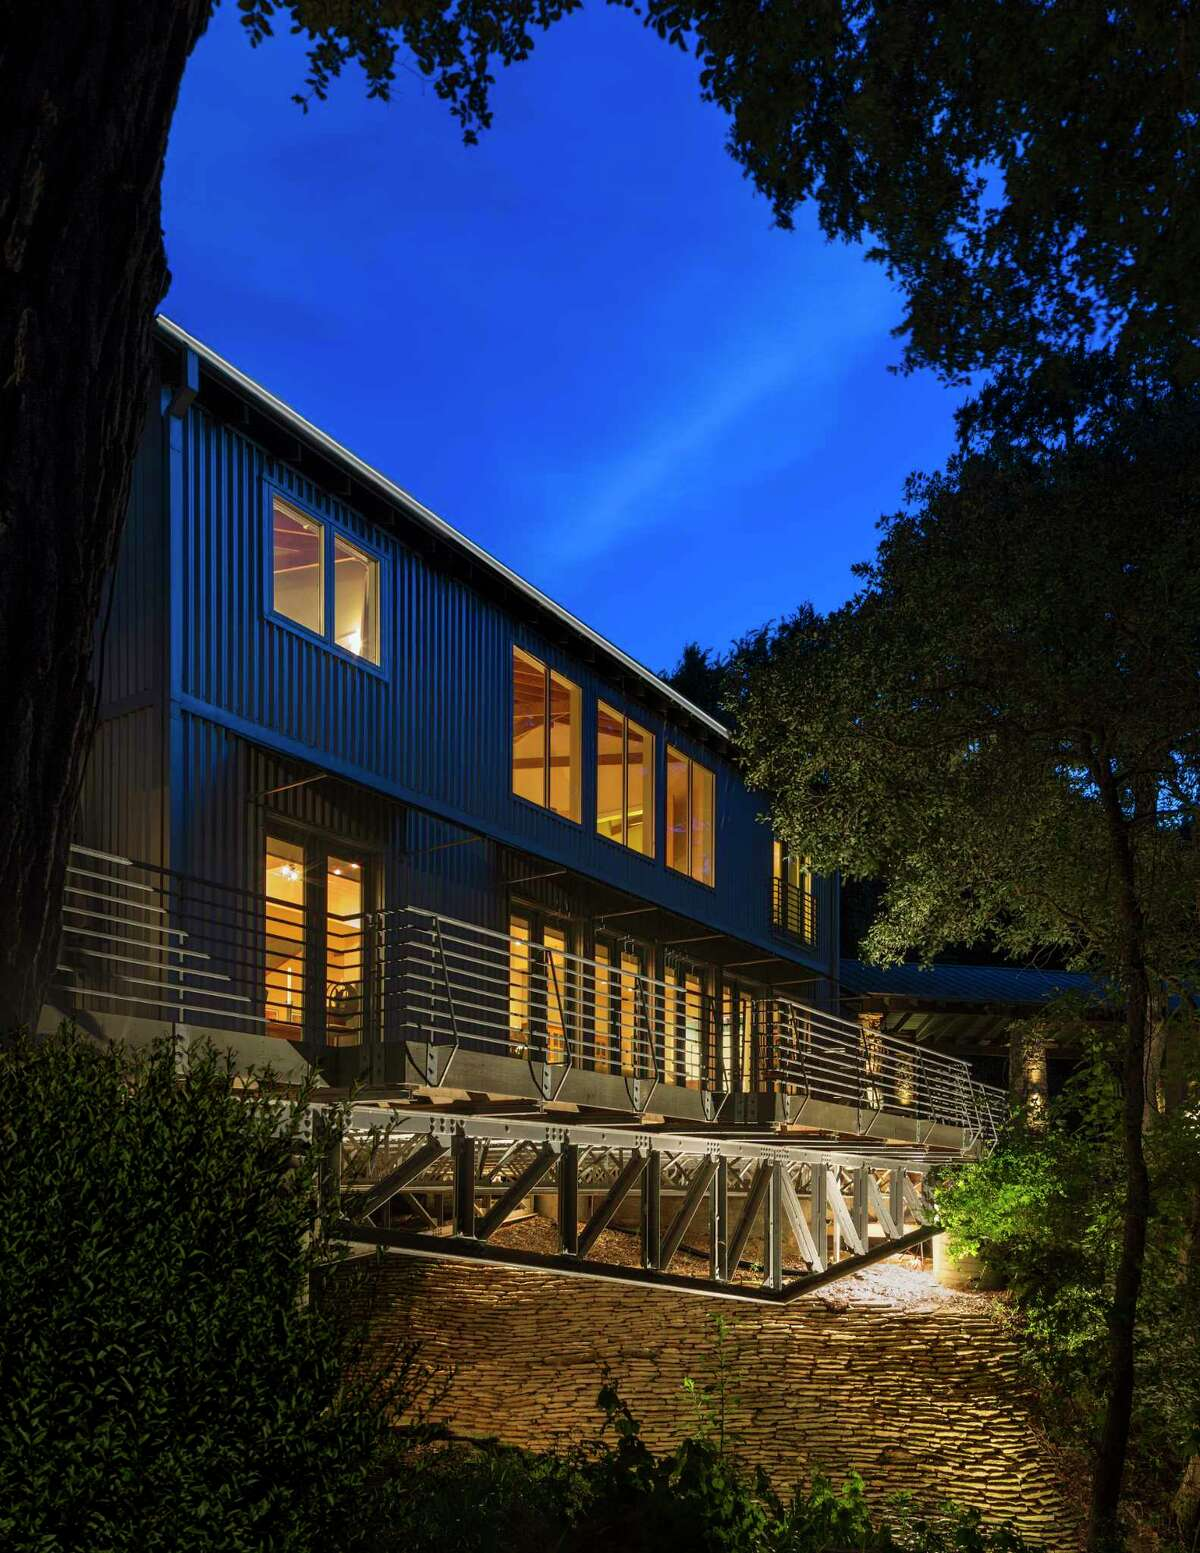 Lights illuminate the architectural structure of the home's base.